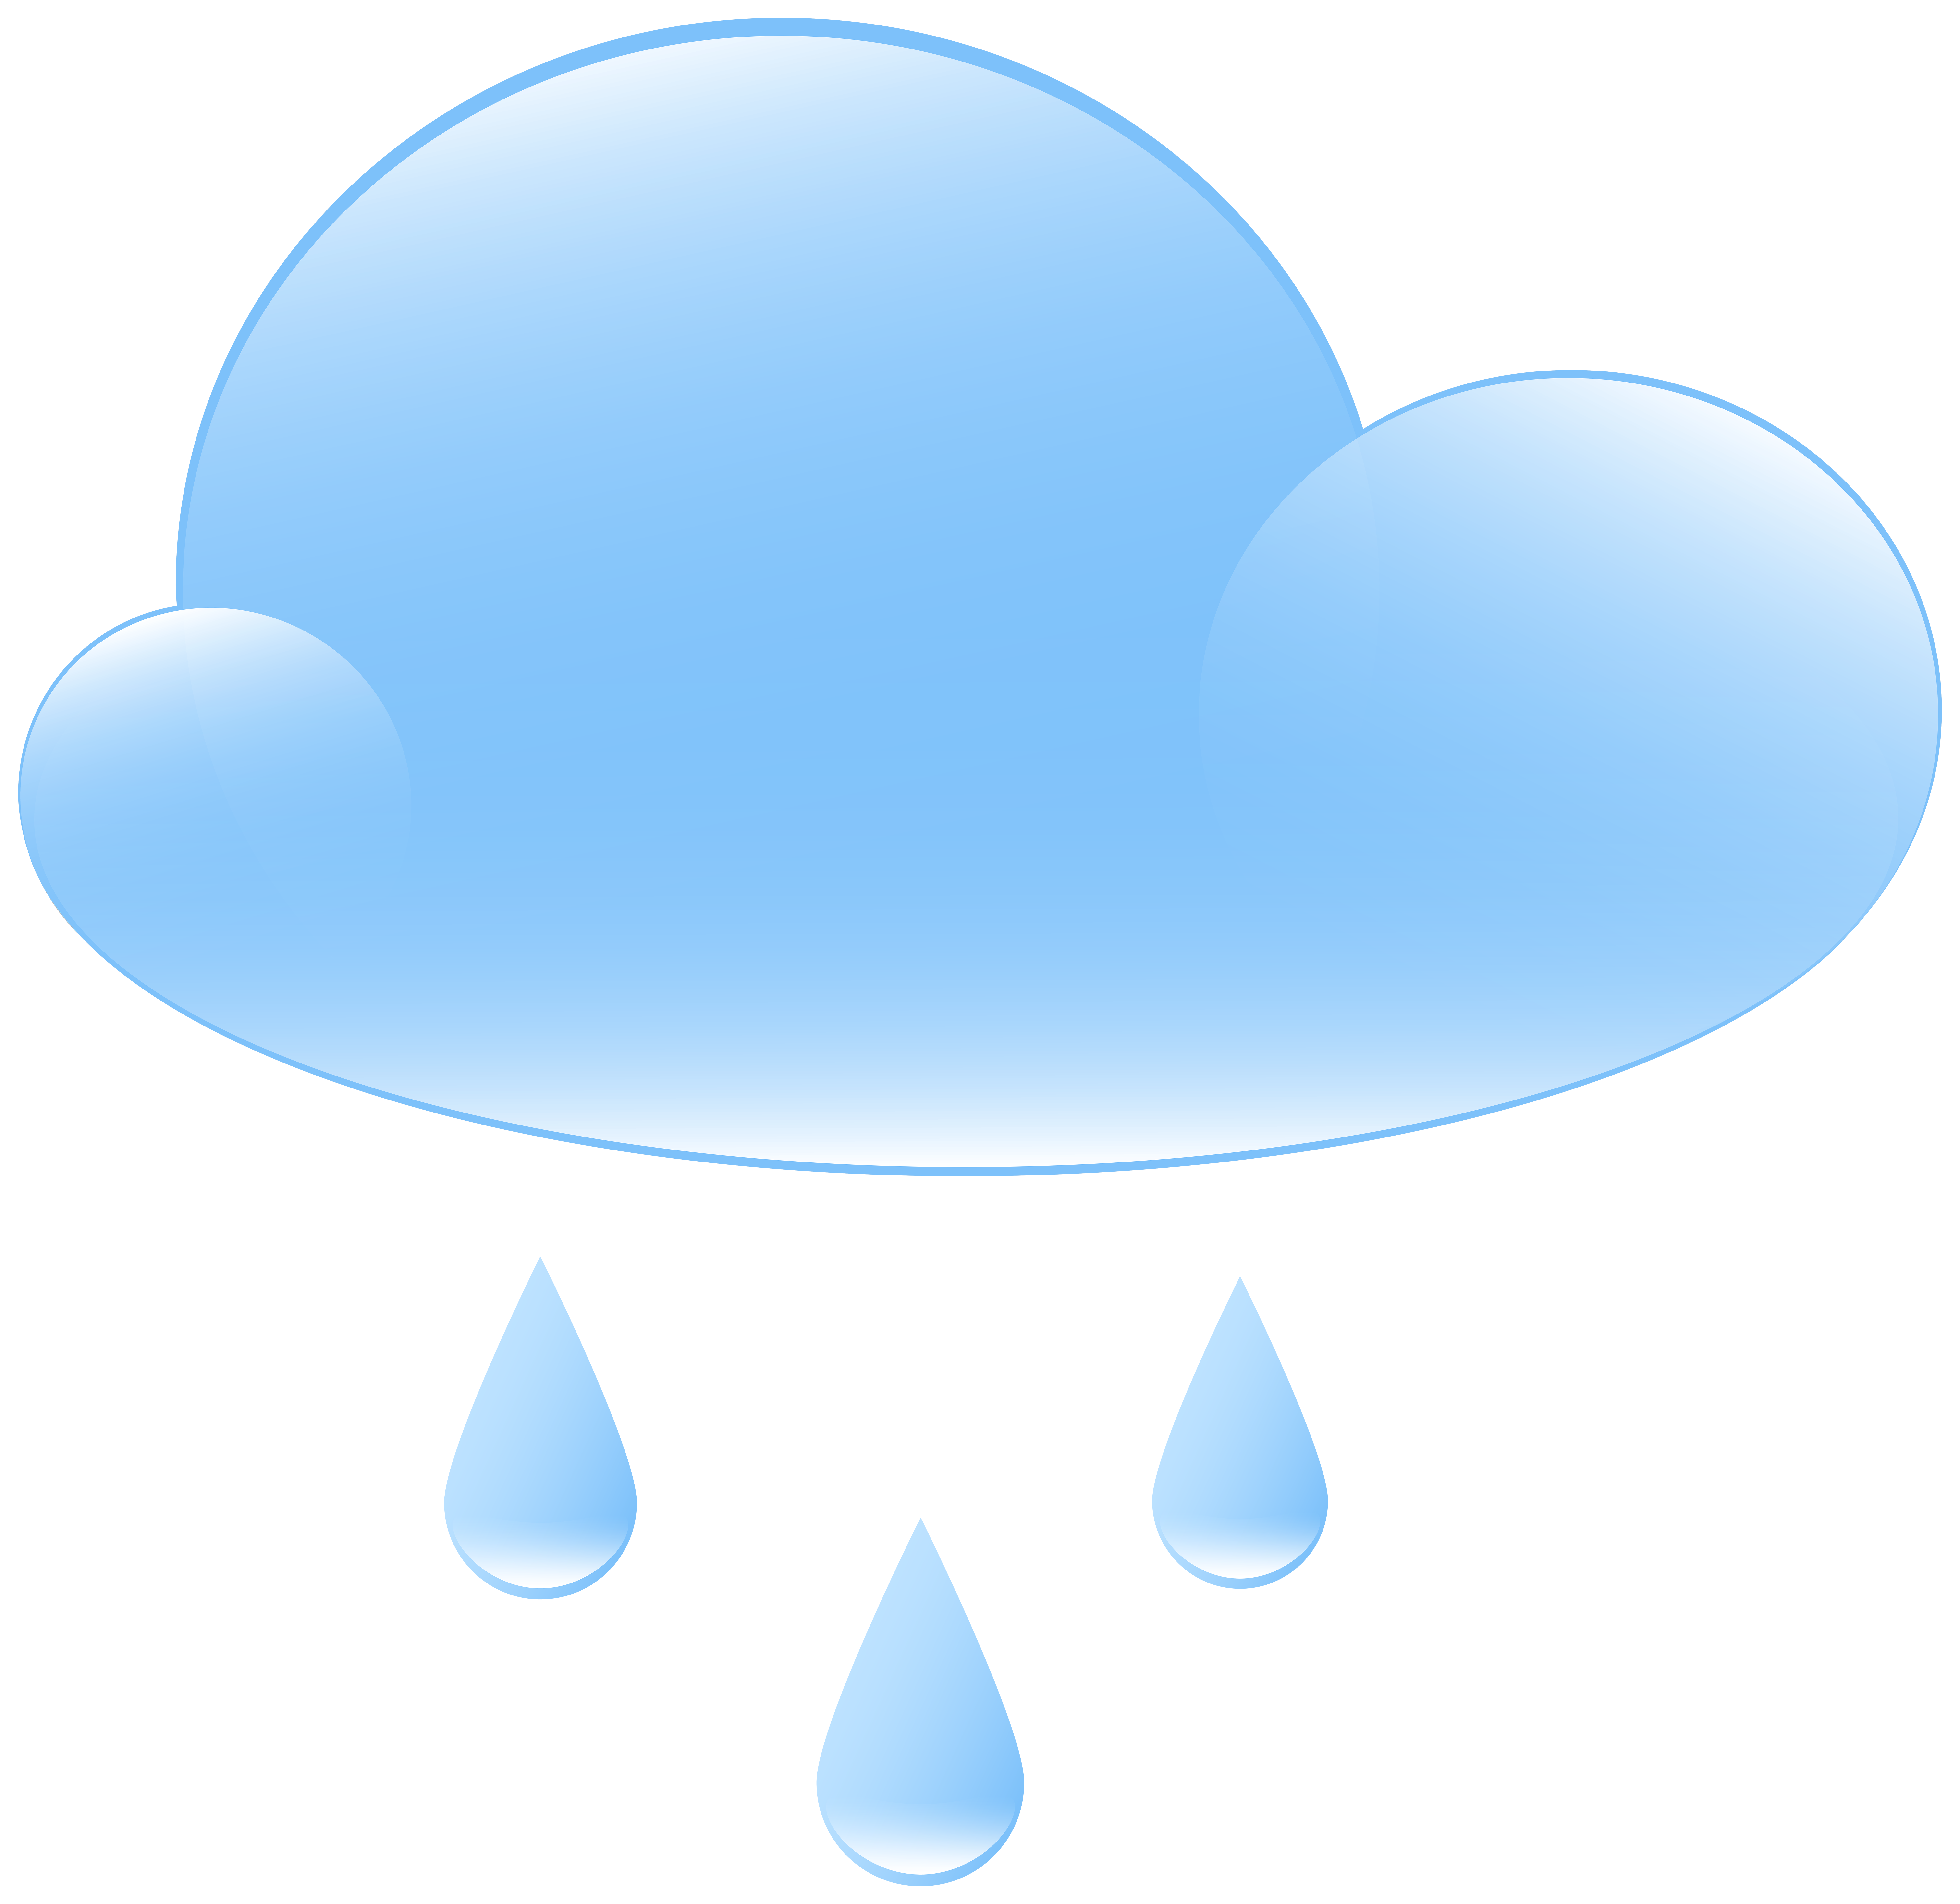 Clouds clipart weather. Rainy cloud icon png